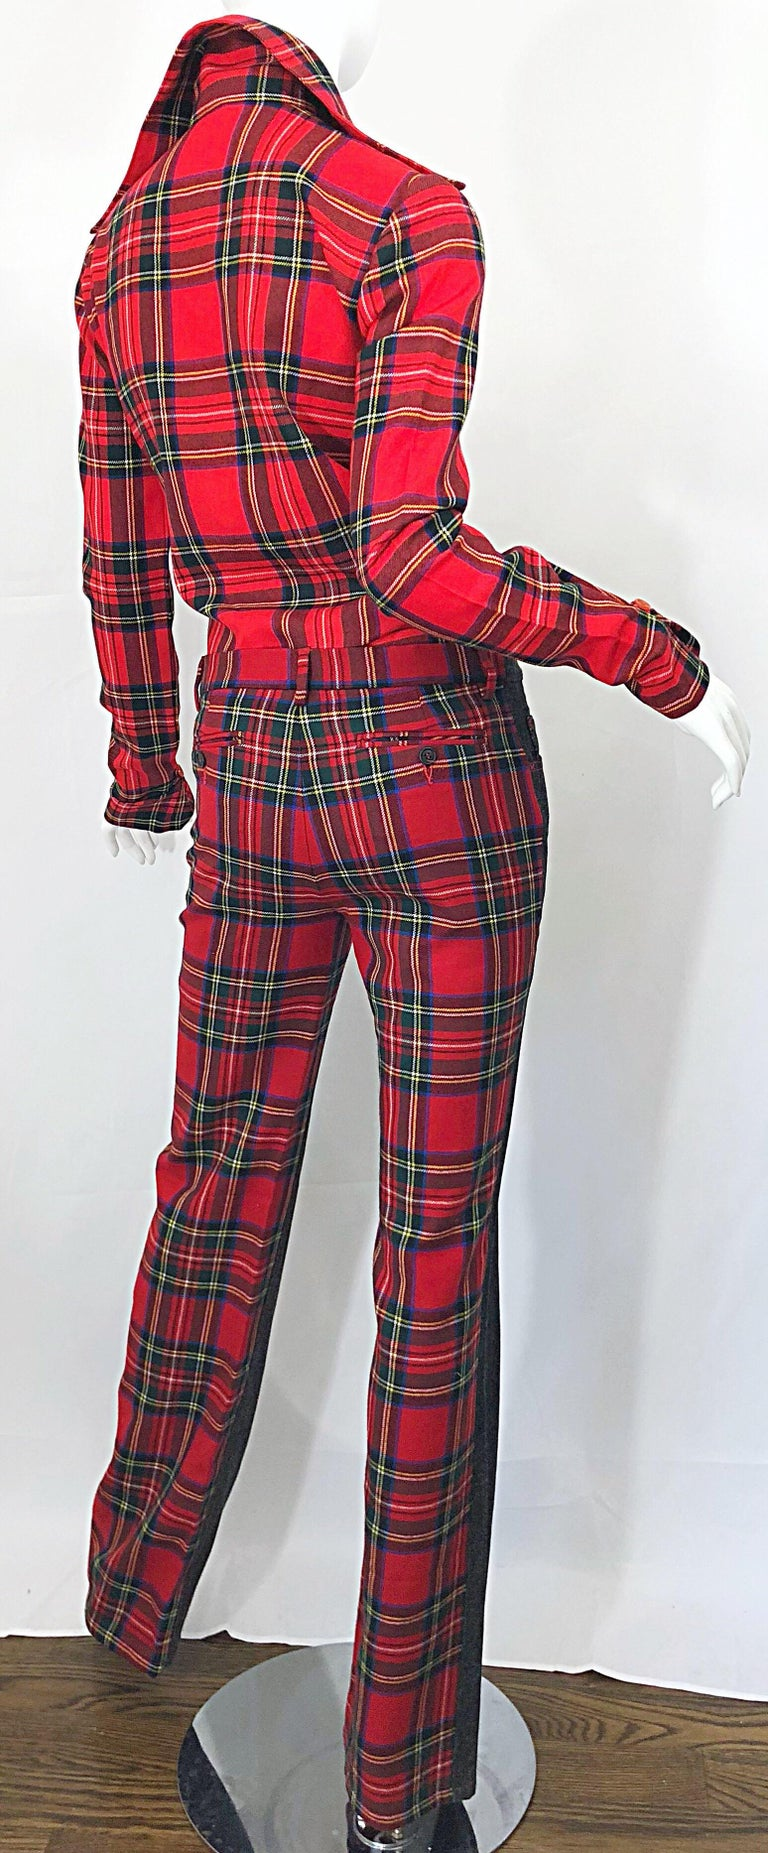 Rare 1990s Dolce & Gabbana Red Tartan Plaid Wool + Denim Flared Jeans and Shirt For Sale 6